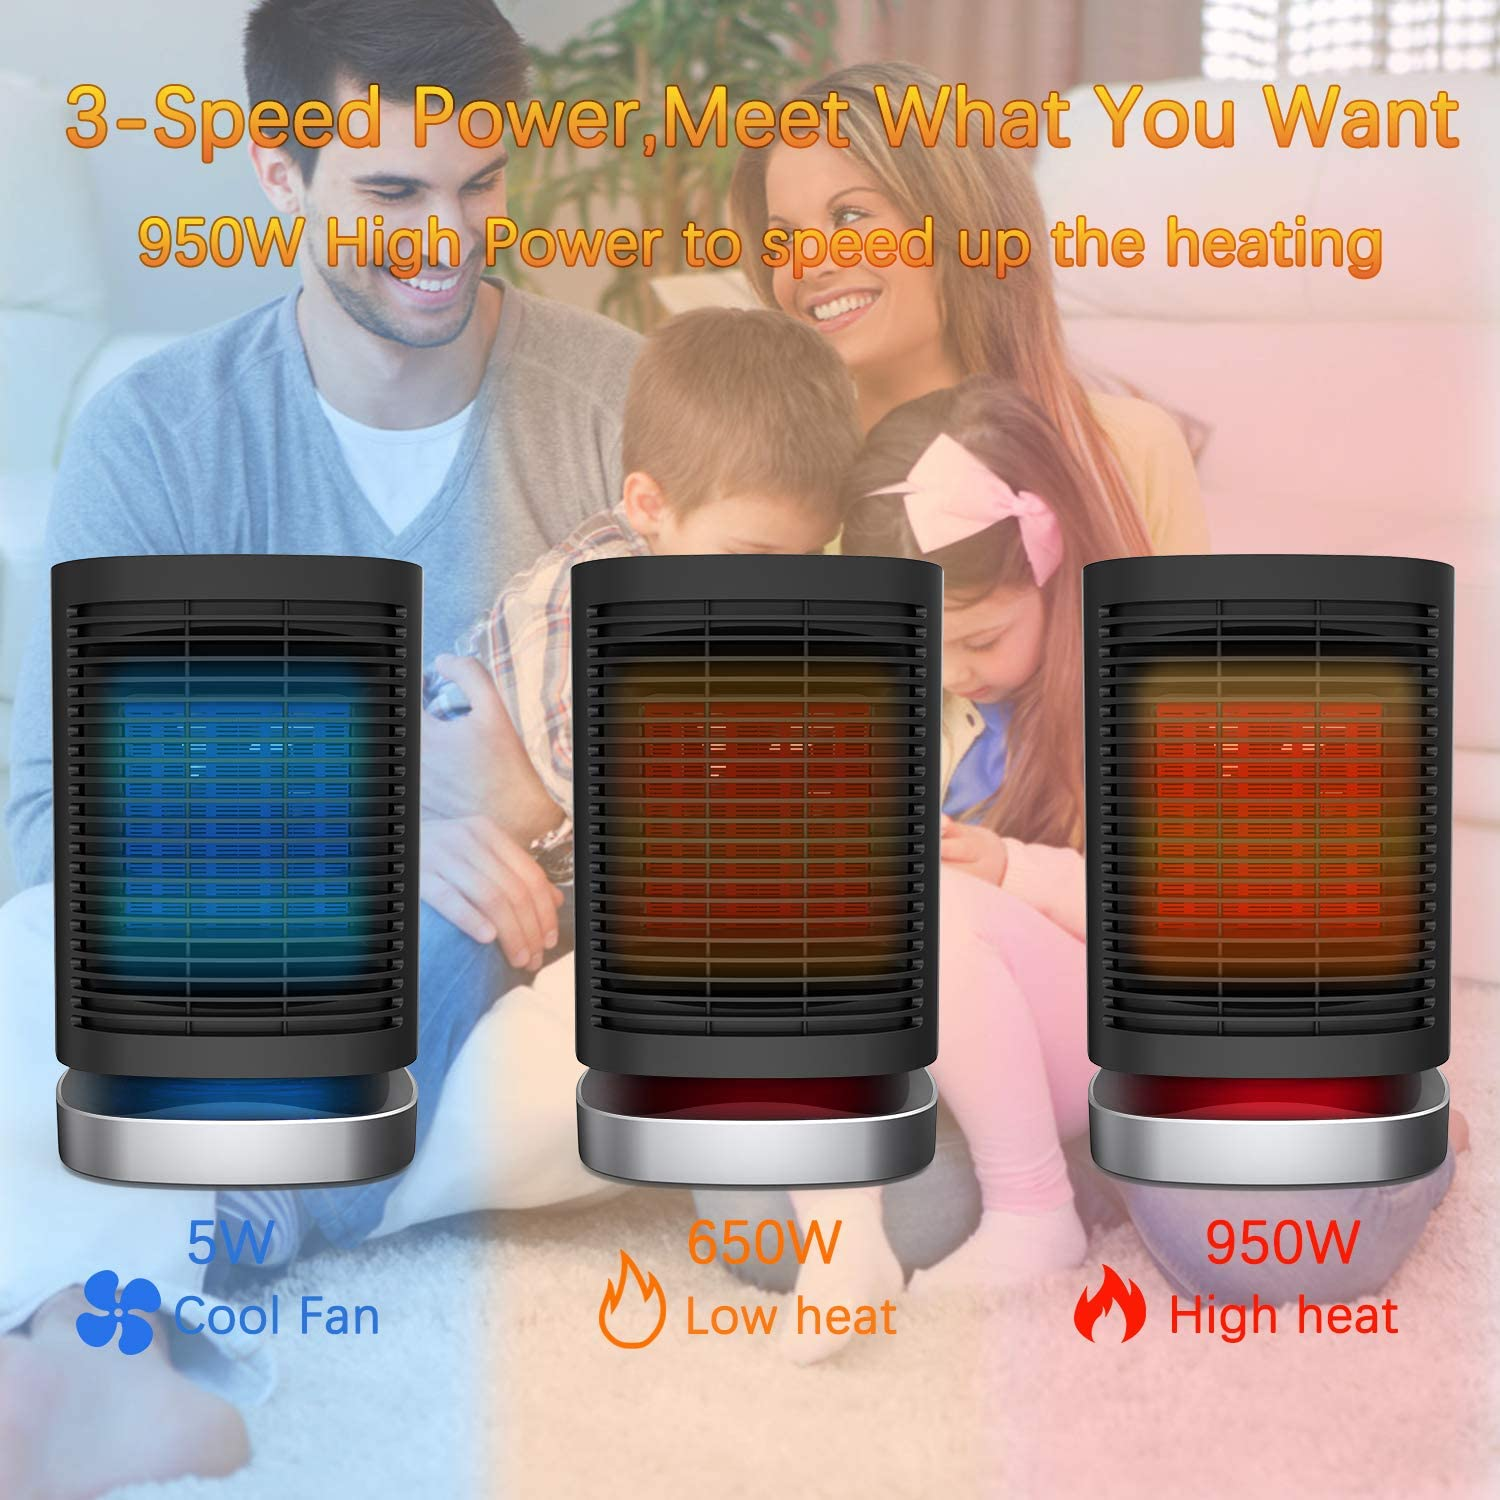 AILUKI Portable Space Heater 950W with